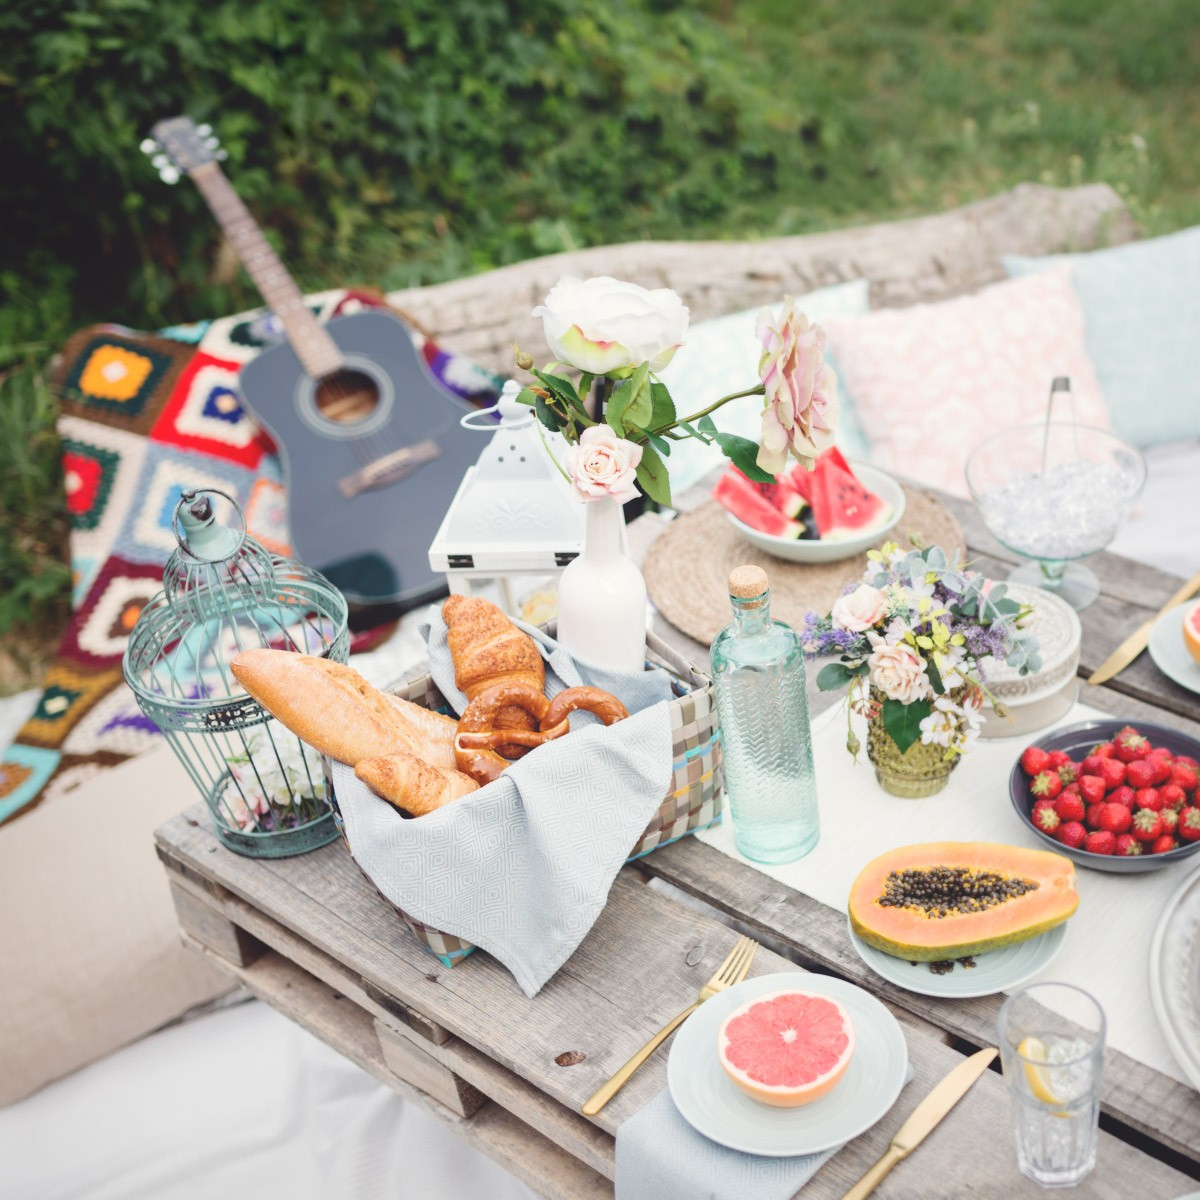 If you are planning a garden party be inspired by these treasure trove of quick and easy ideas for creative bohemian style table setting here. & Bohemian Style Table Setting Tips | SolaSwiss.com